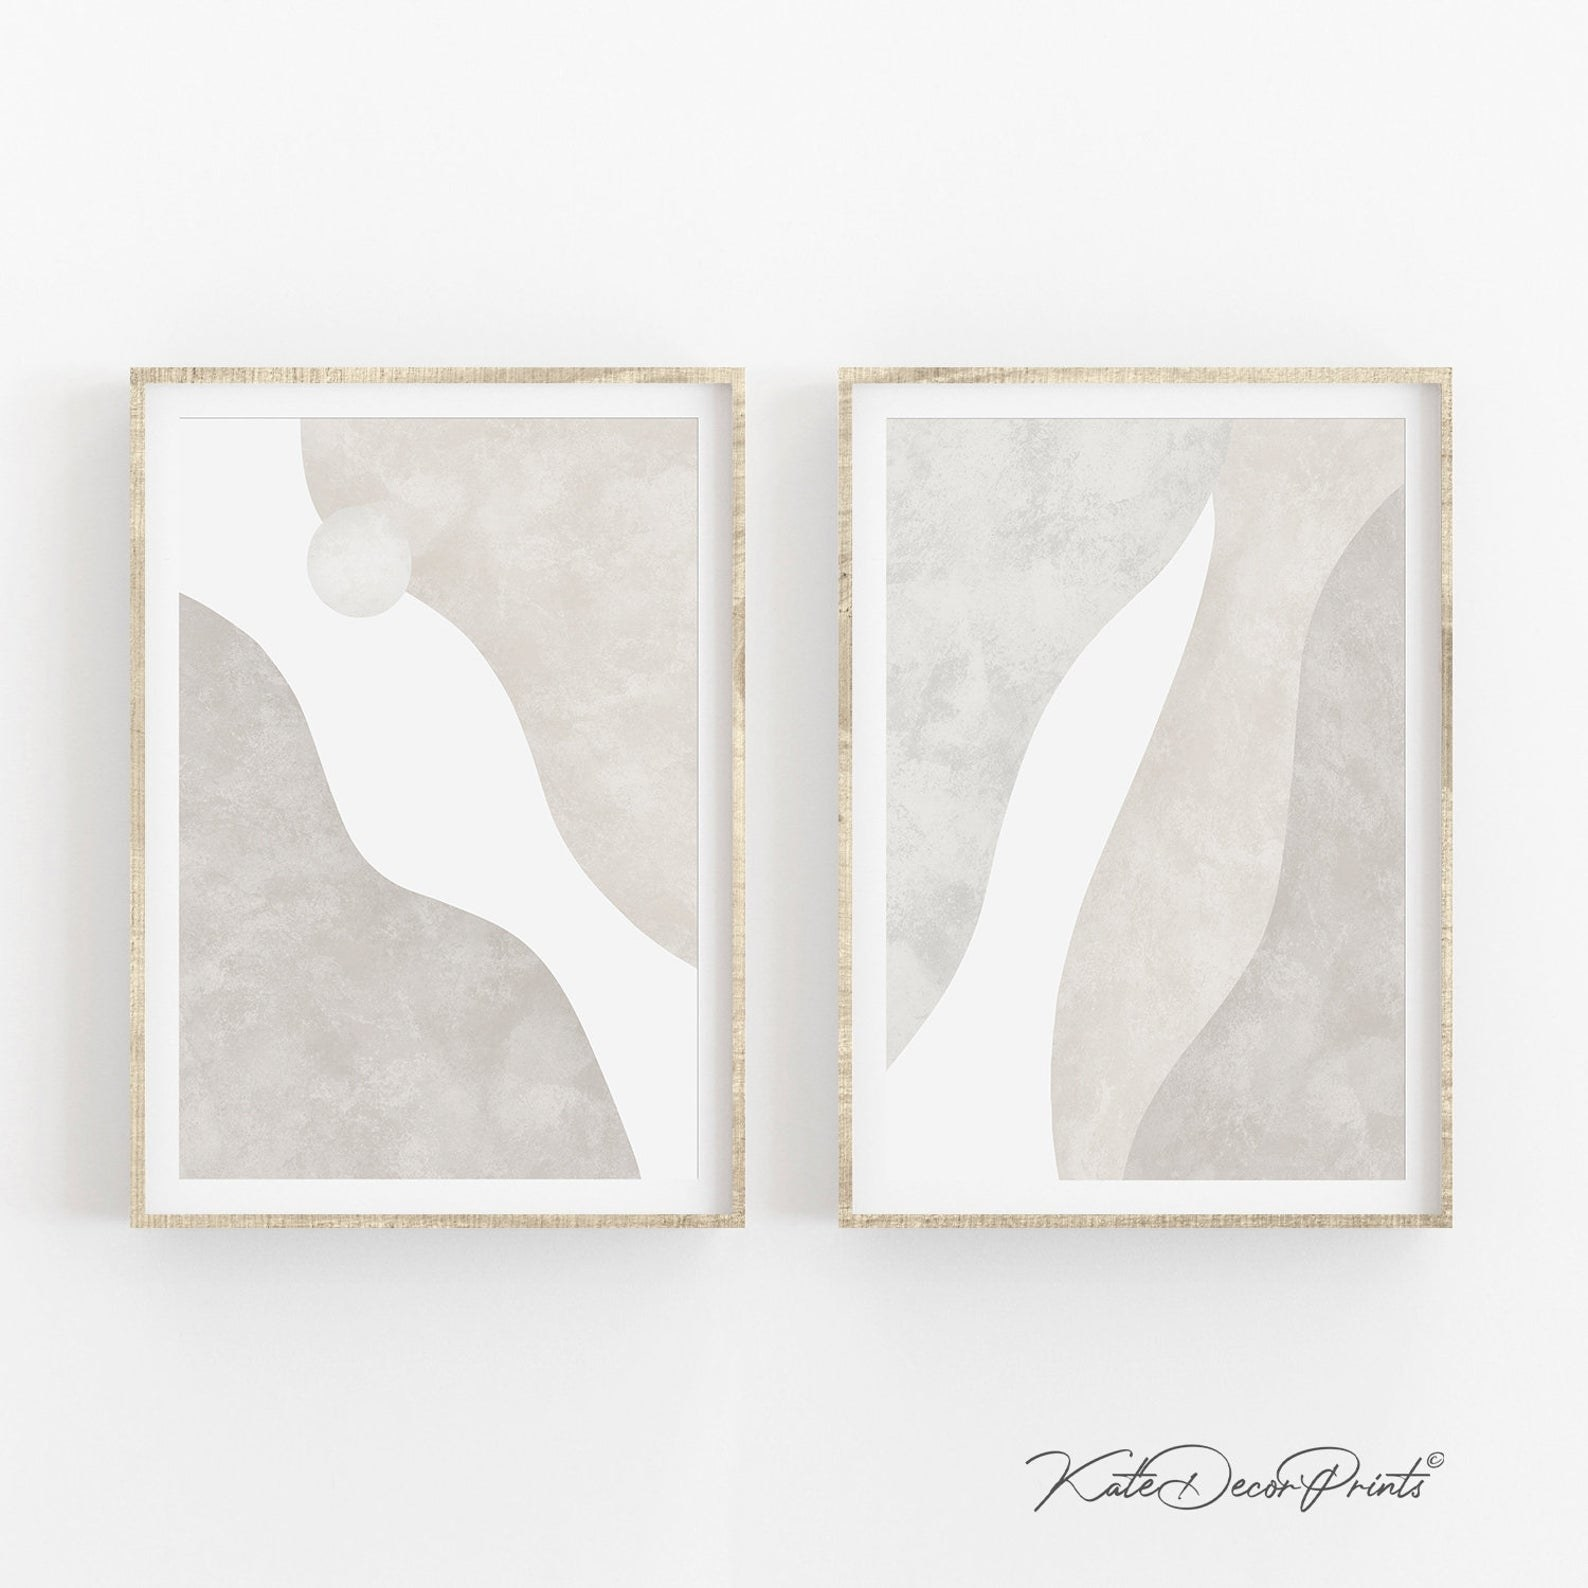 Two gray and beige tone abstract art pieces hung up next to each other on a wall